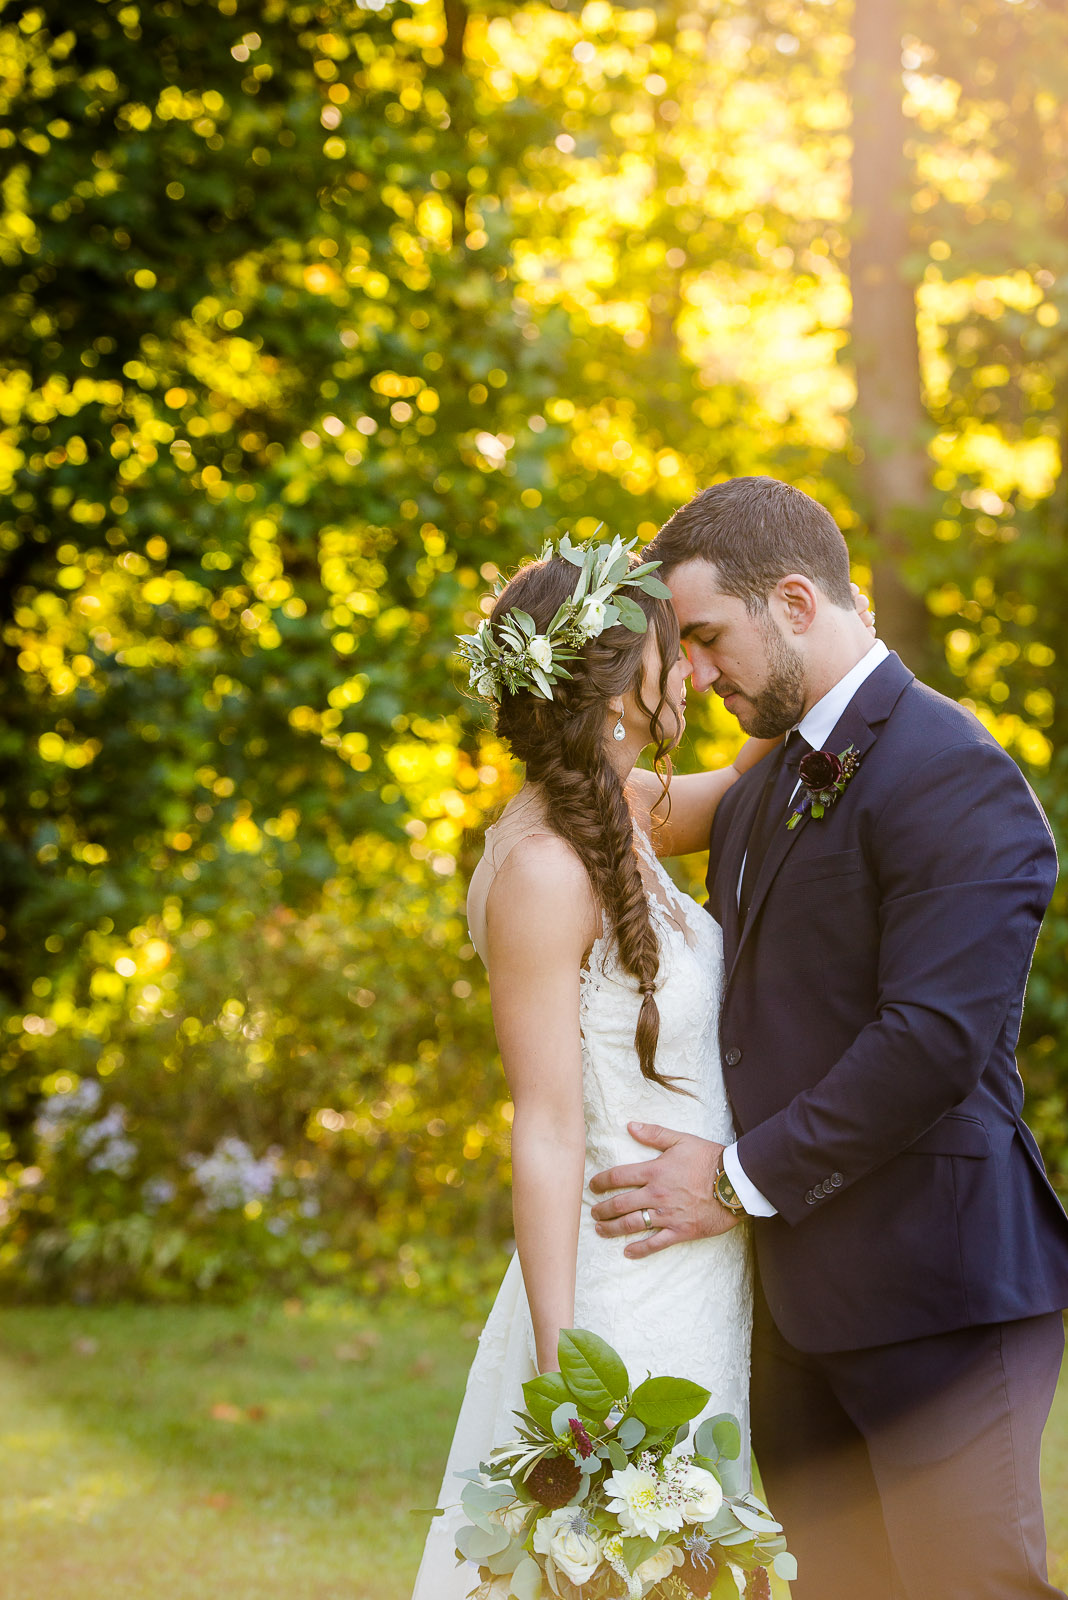 Eric_and_Christy_Photography_Blog_Stephanie_Nick_Wedding-84